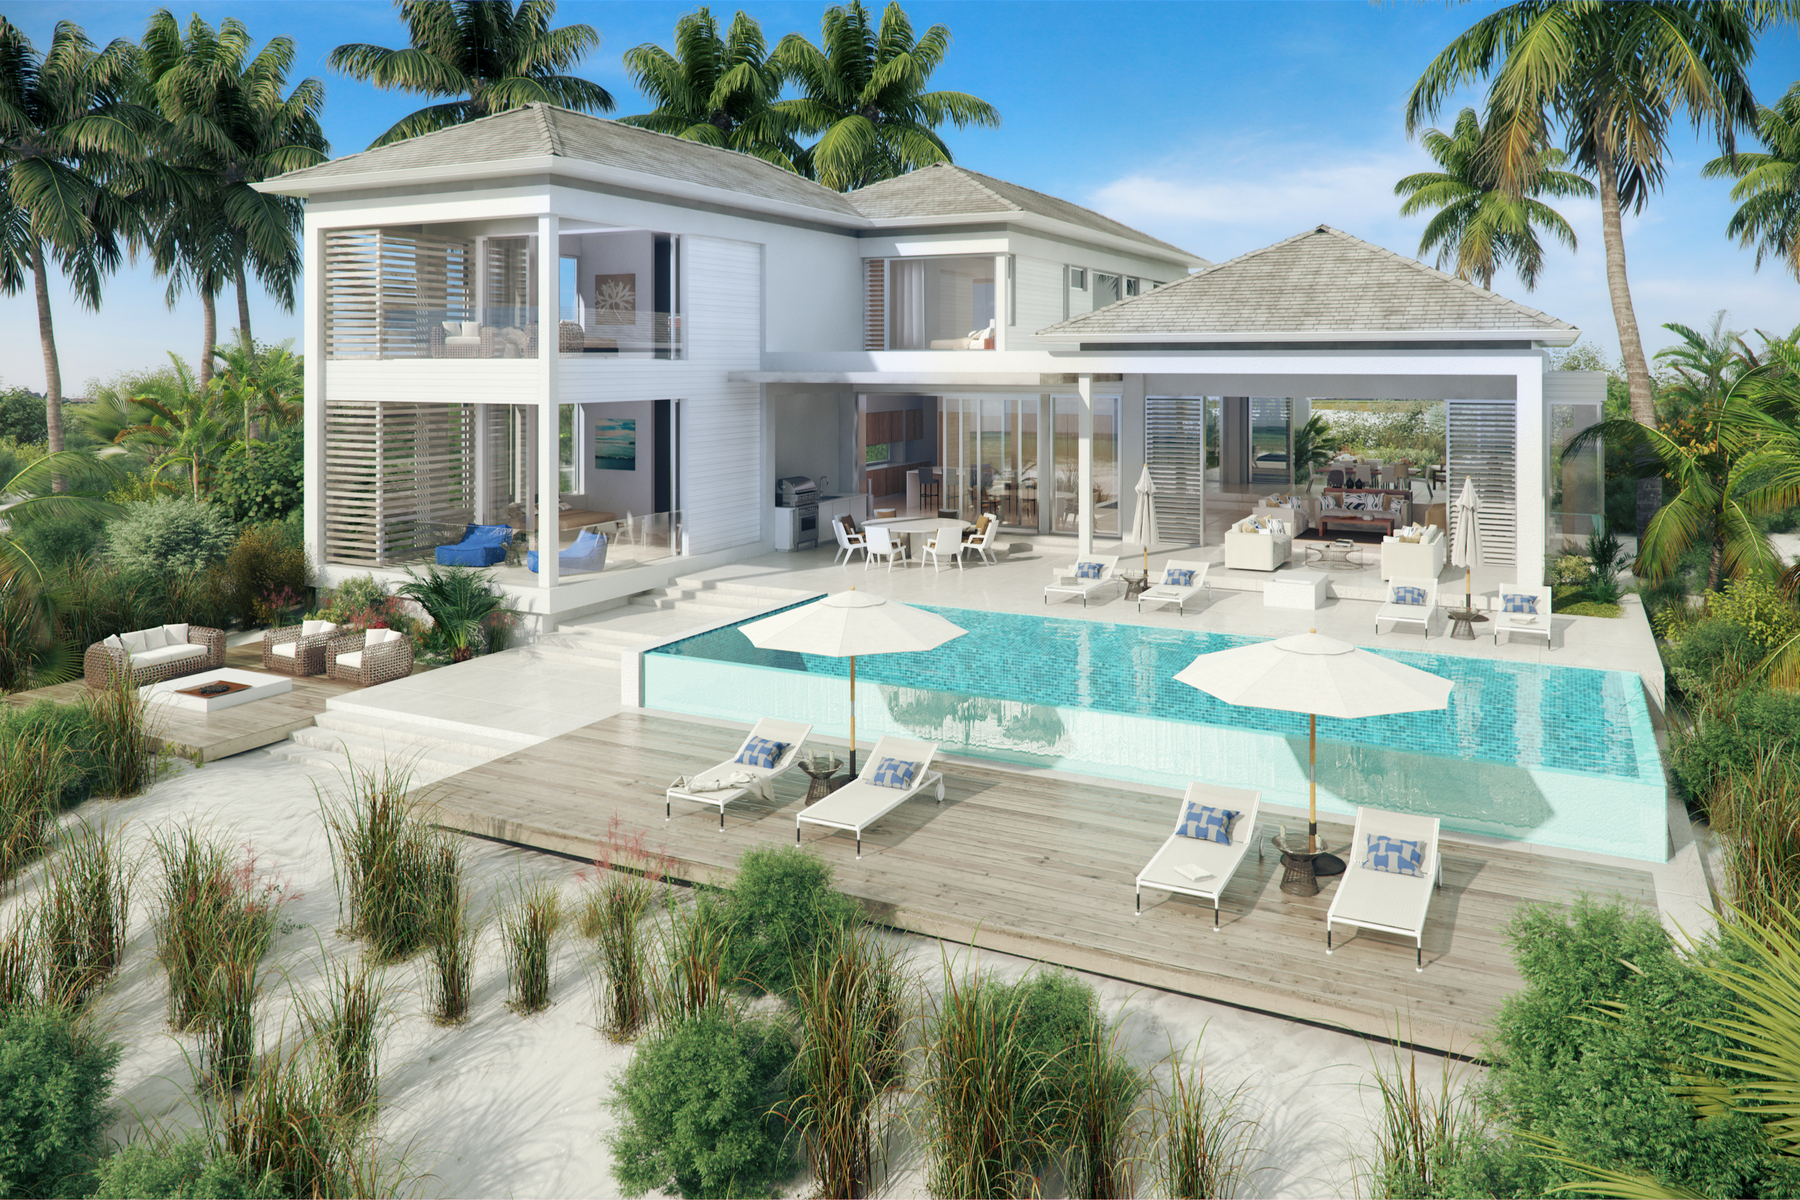 獨棟家庭住宅 為 出售 在 BEACH ENCLAVE GRACE BAY Design A Beachfront, Grace Bay, 普羅維登夏, TKCA 1ZZ 特克斯和凱科斯群島